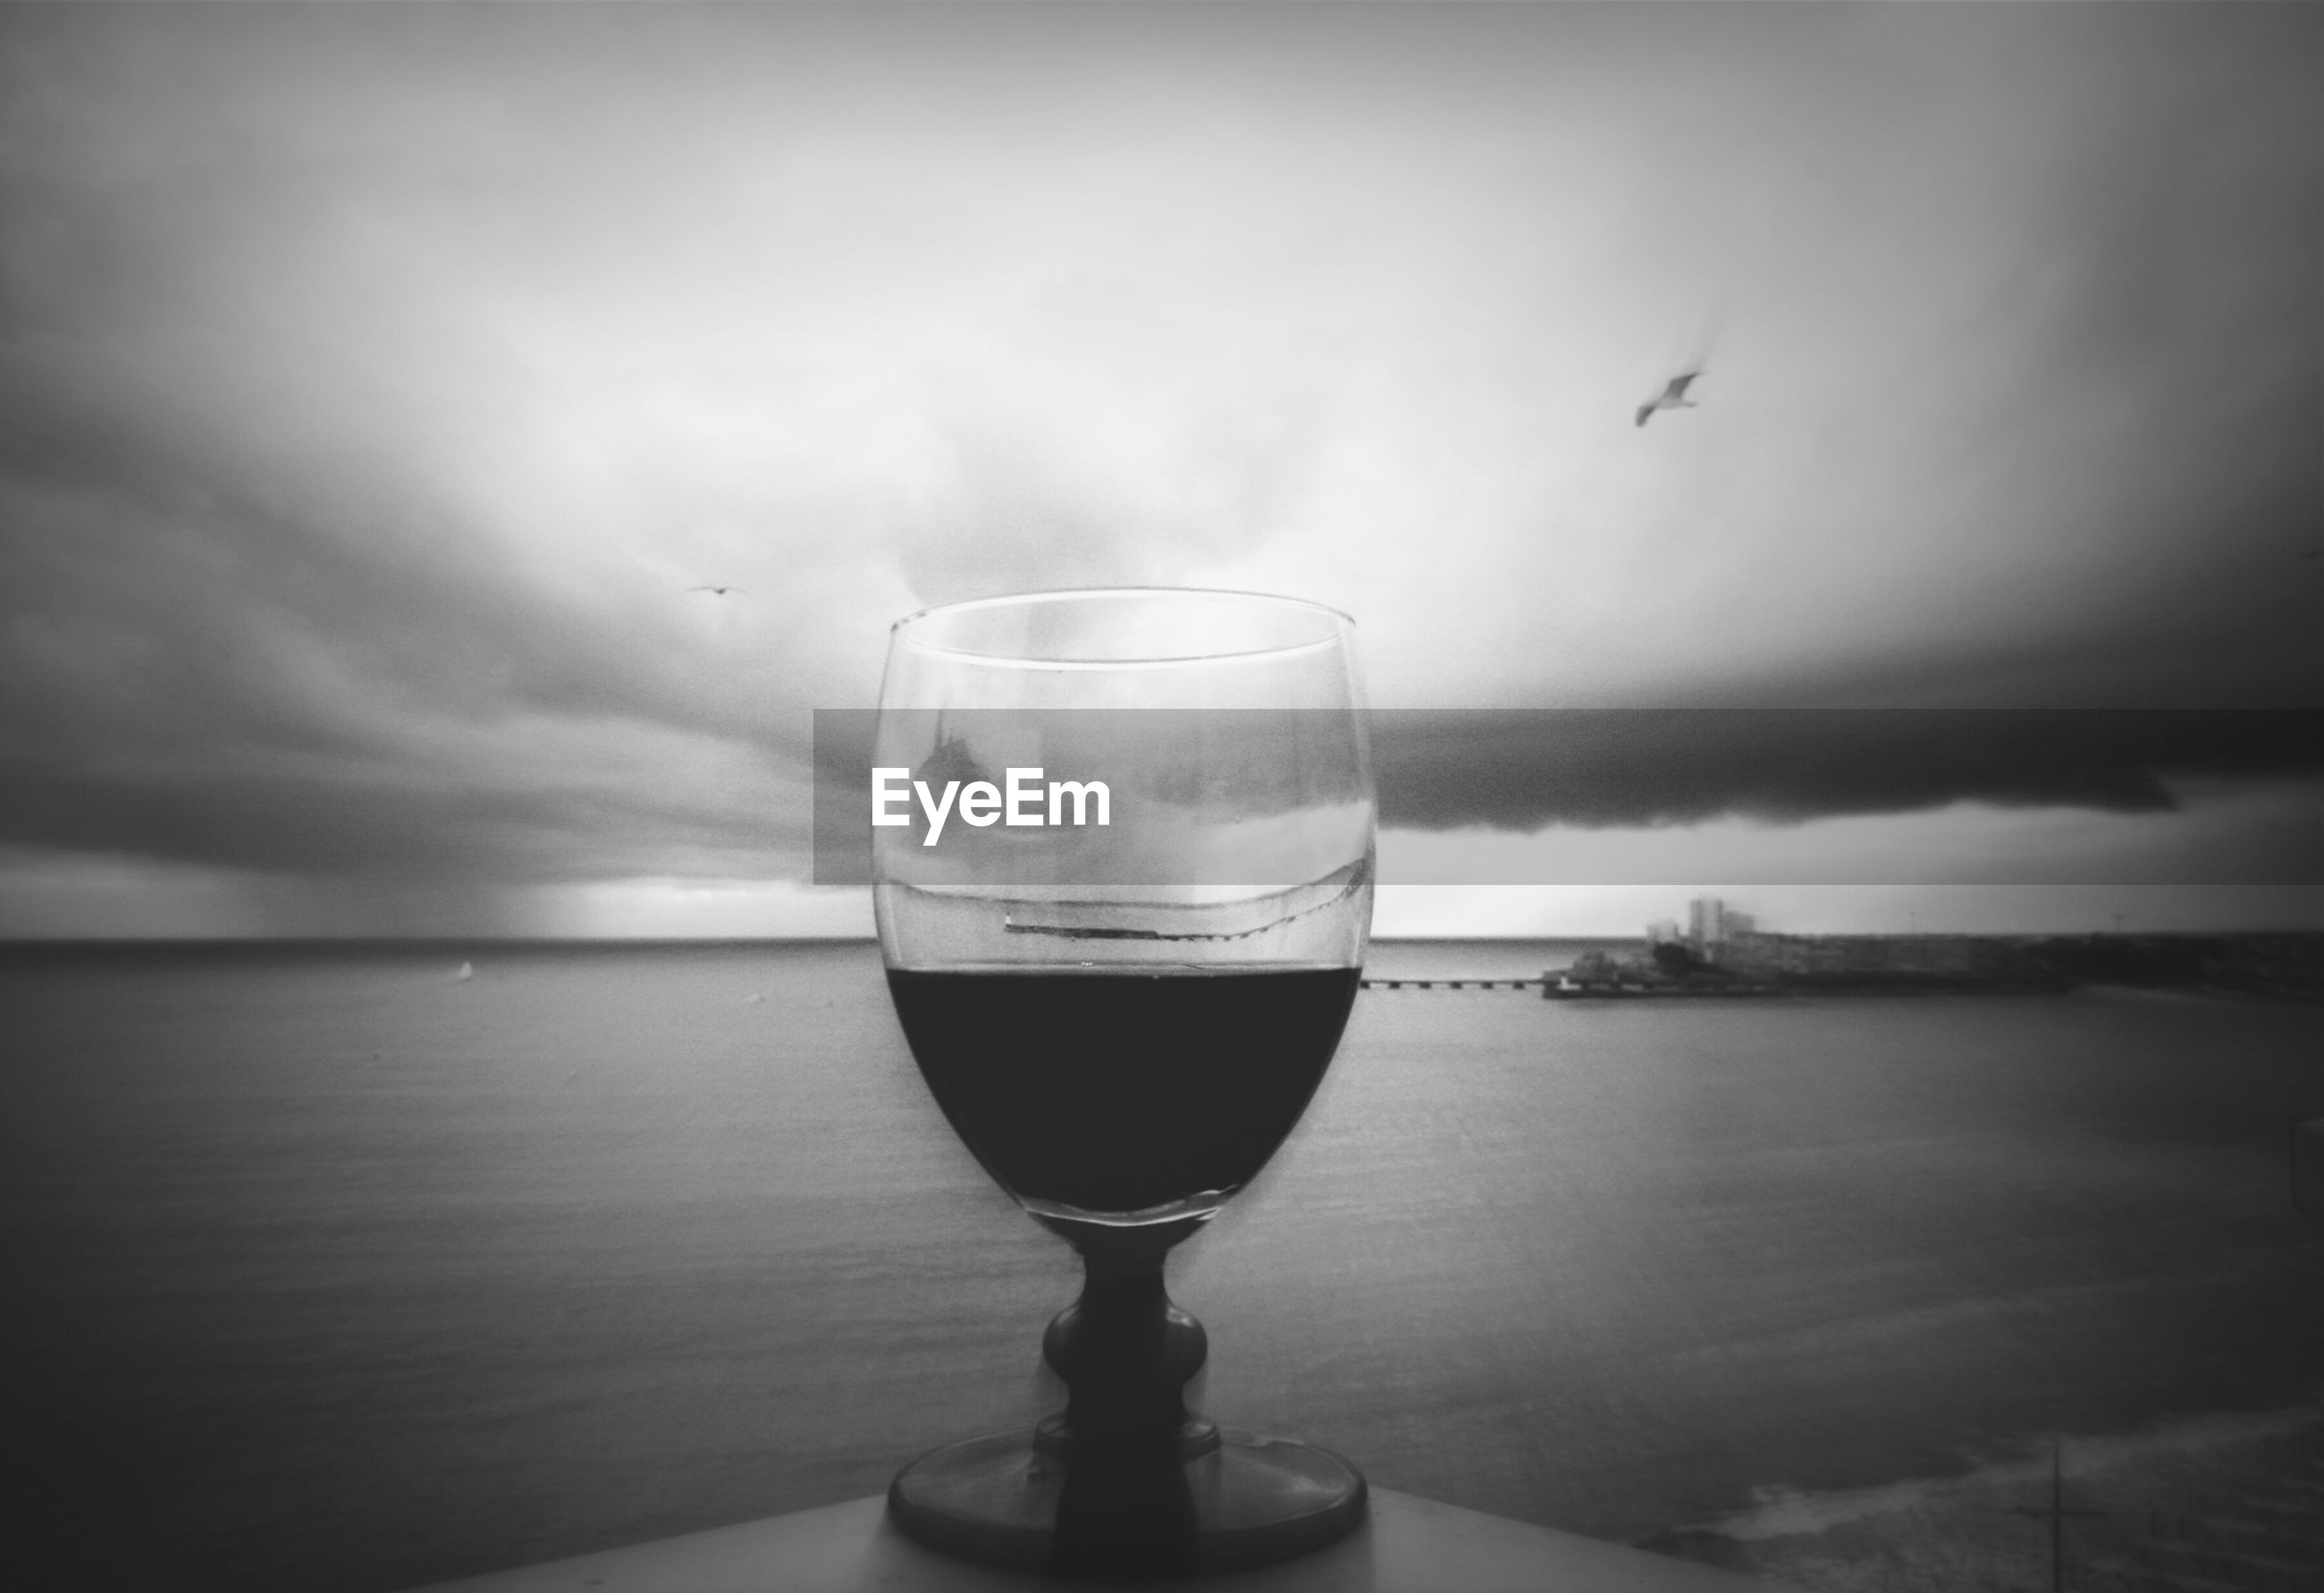 food and drink, drink, refreshment, drinking glass, sea, water, horizon over water, sky, freshness, alcohol, glass - material, close-up, table, focus on foreground, cloud - sky, sunset, transparent, indoors, no people, drinking straw